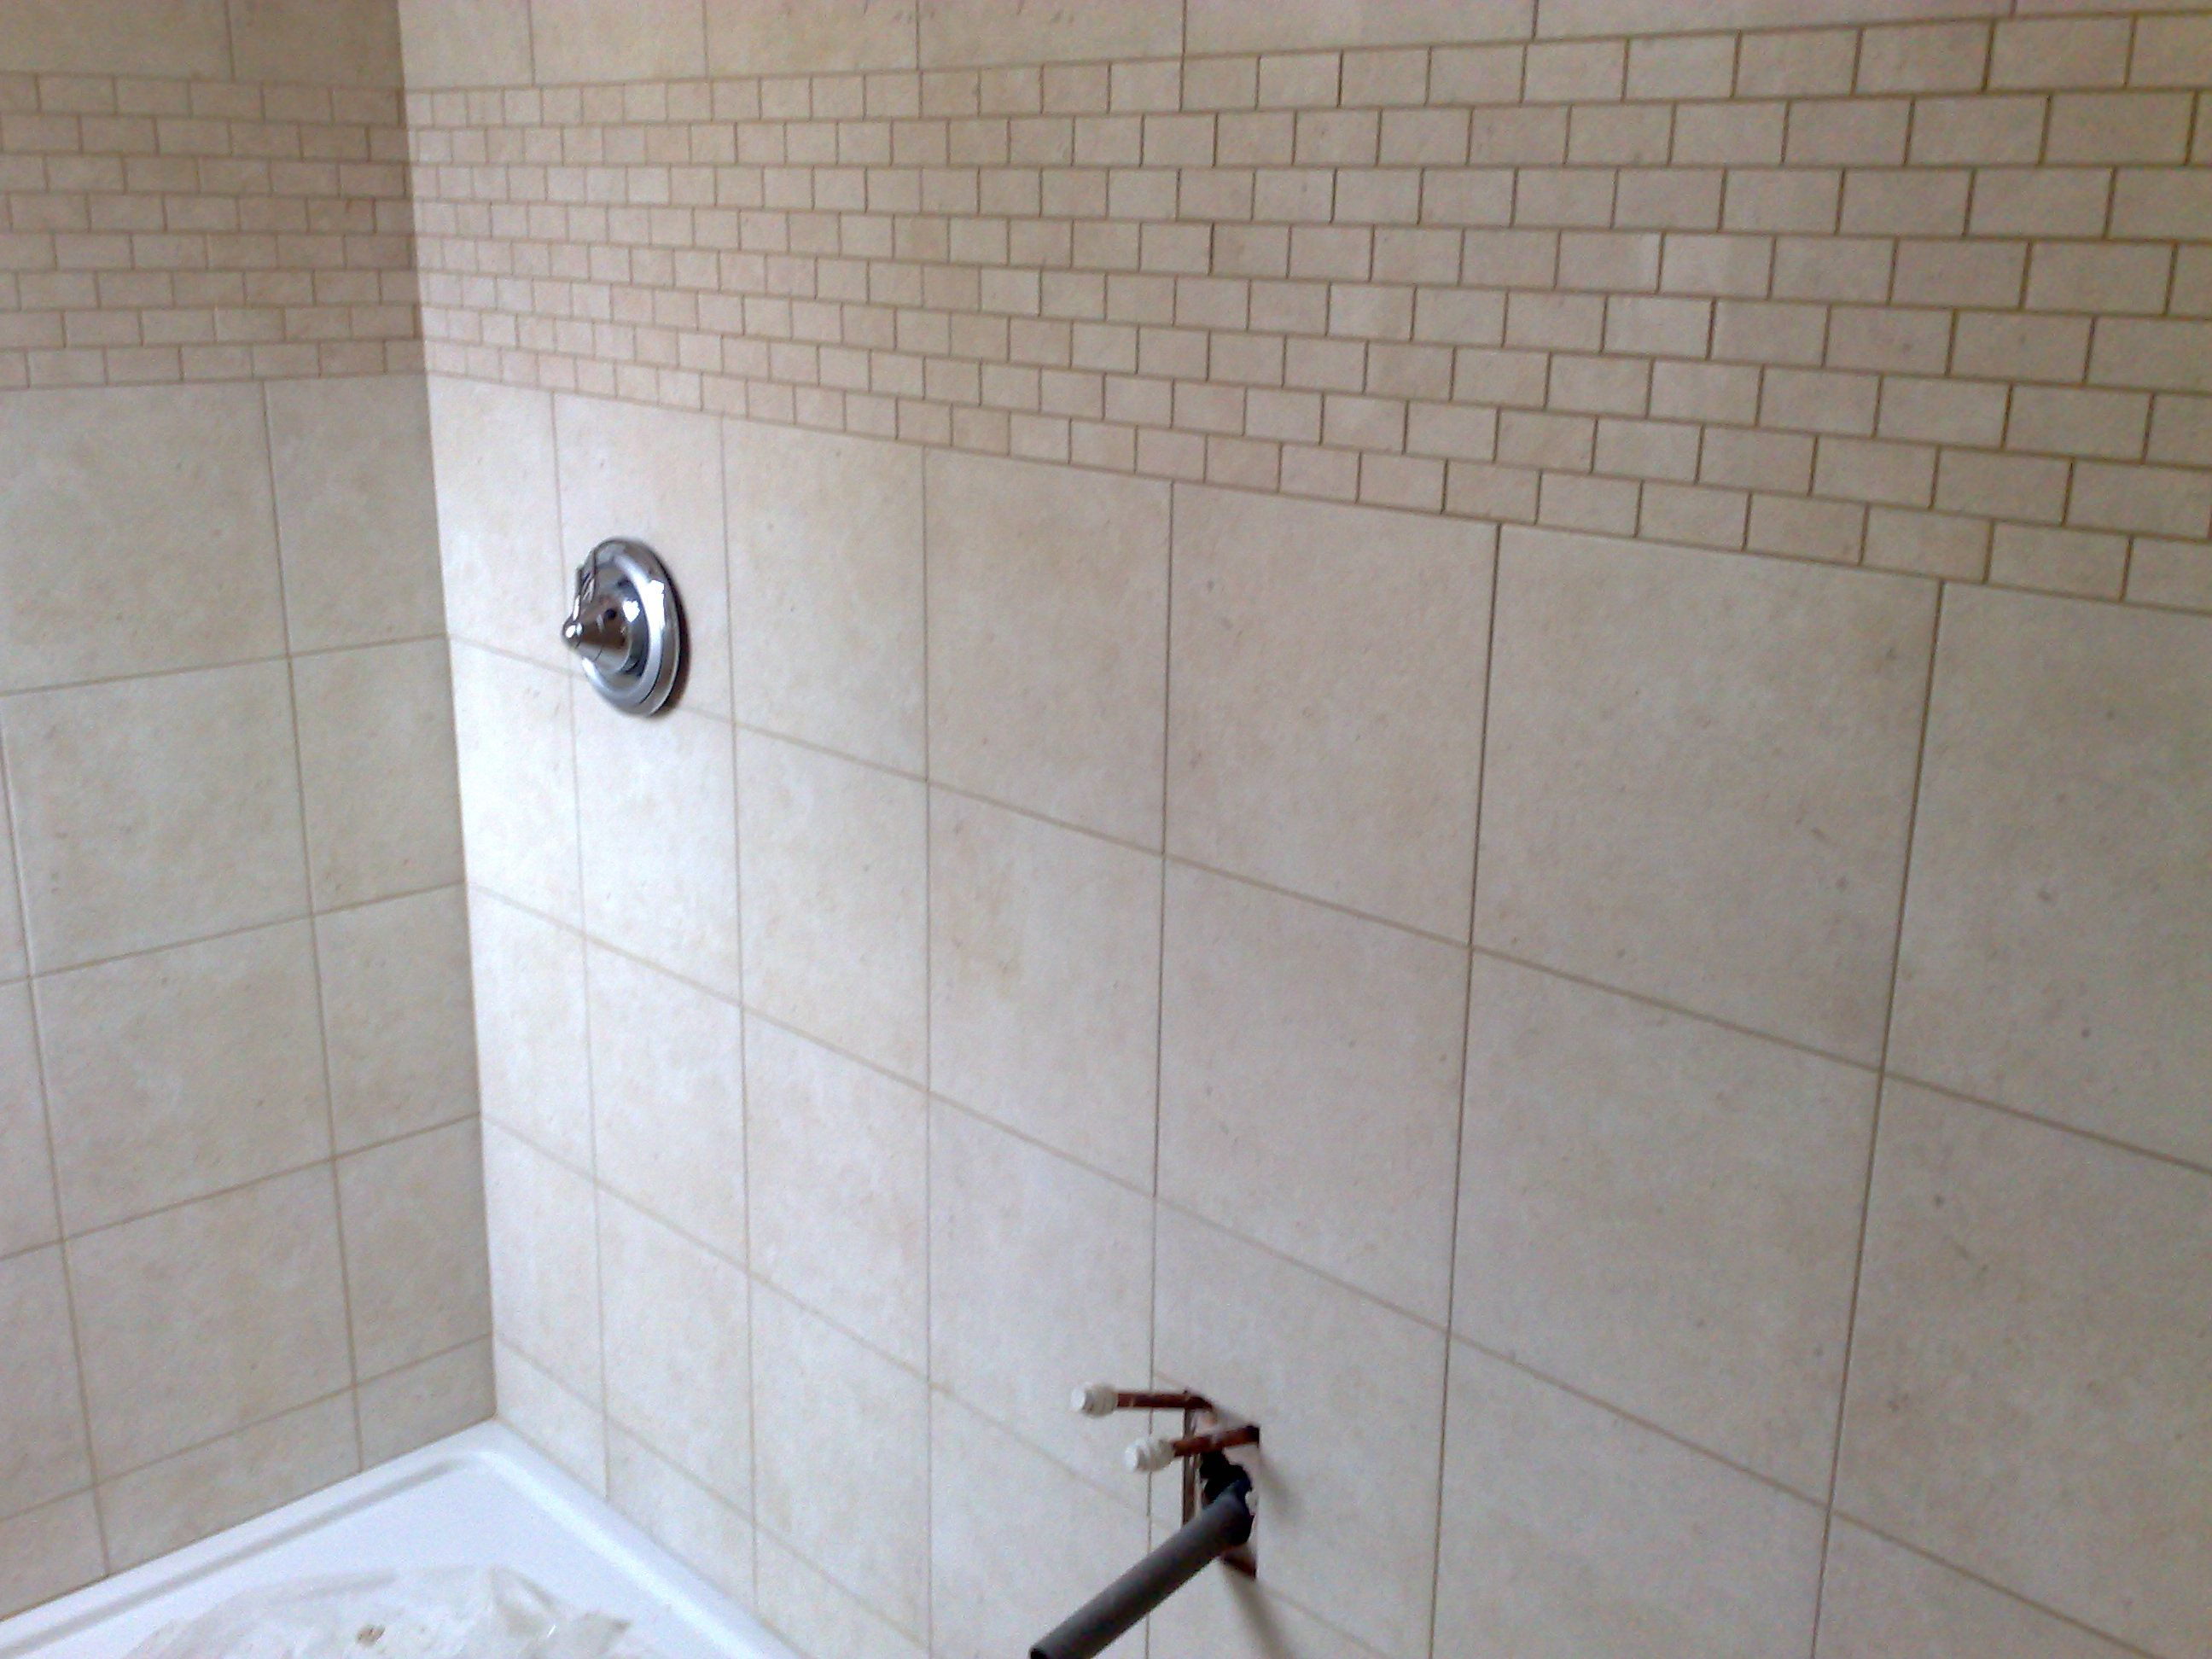 Floor tiling wall tiling home pinterest wall tiles wet room dailygadgetfo Image collections